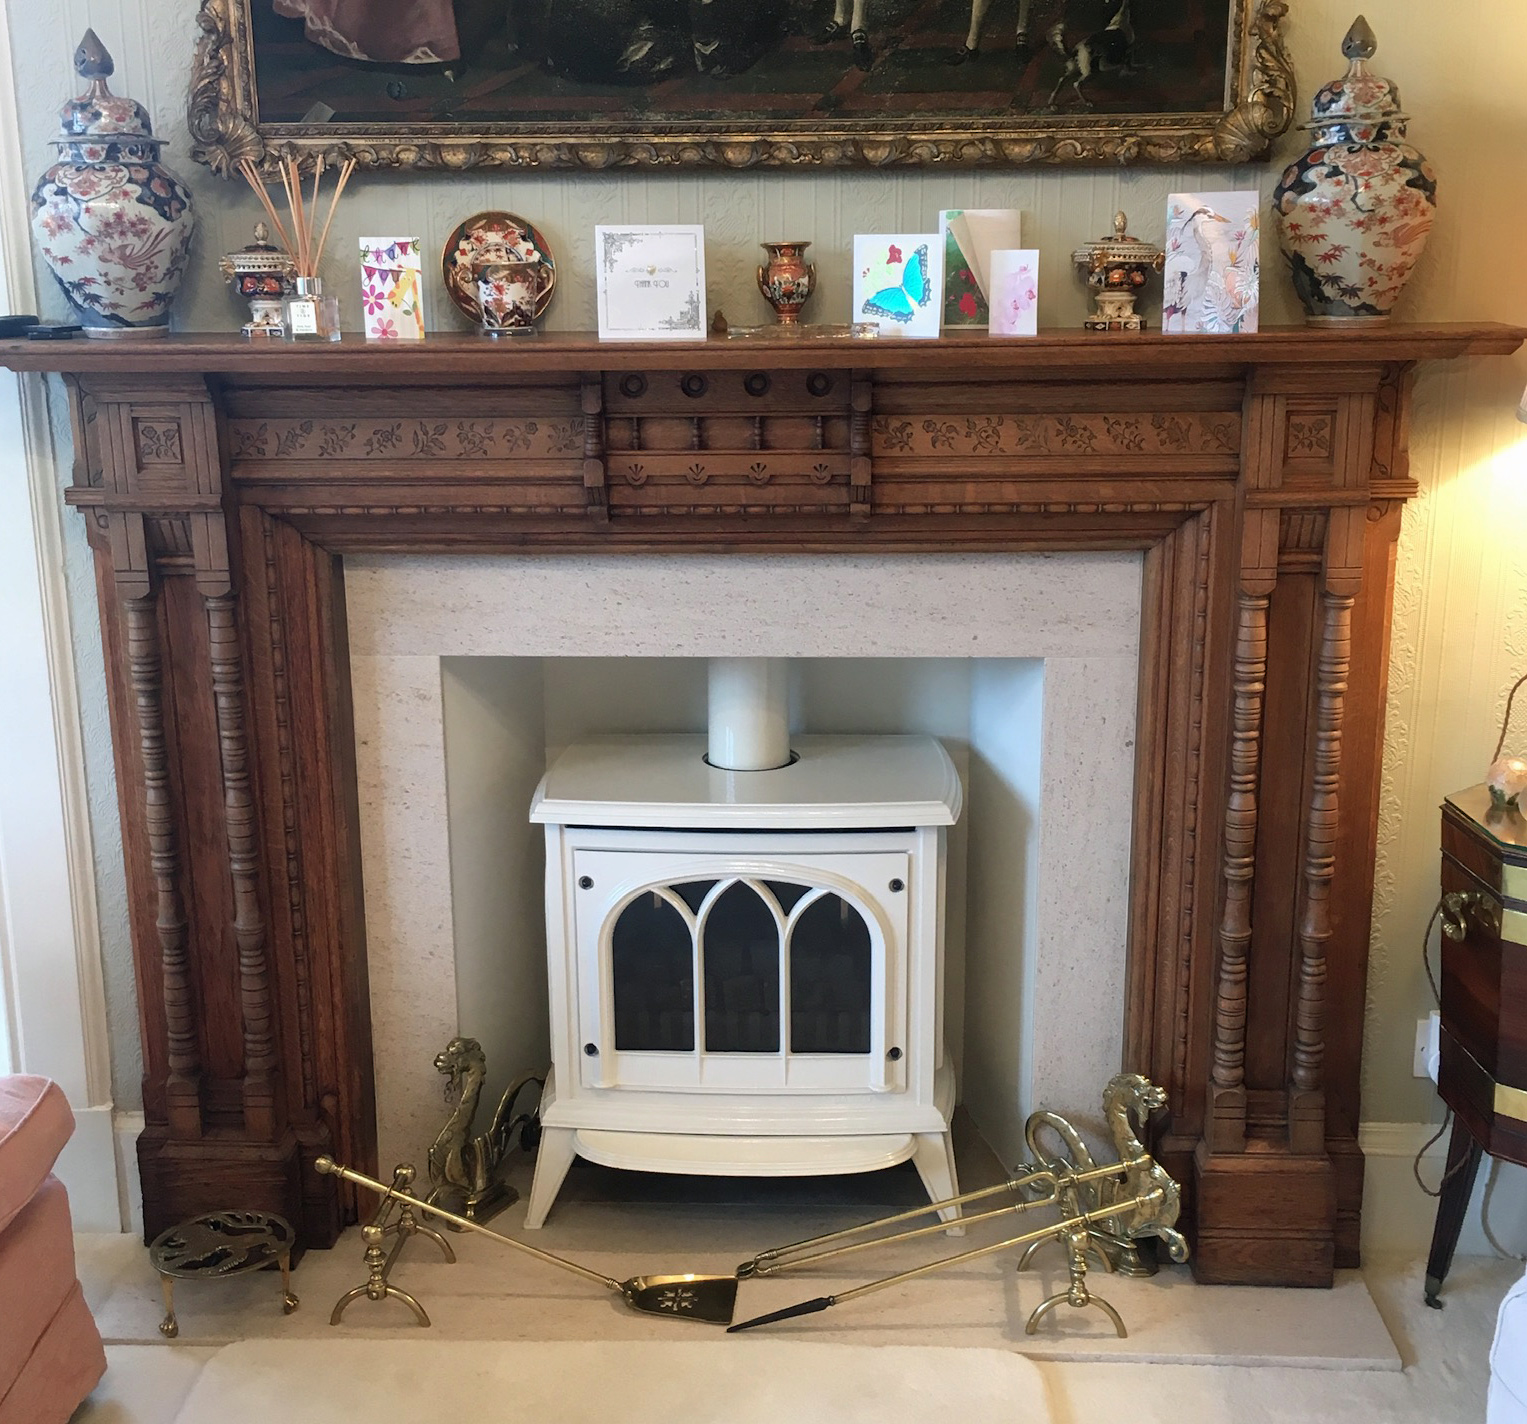 White stove with wood mantlepiece